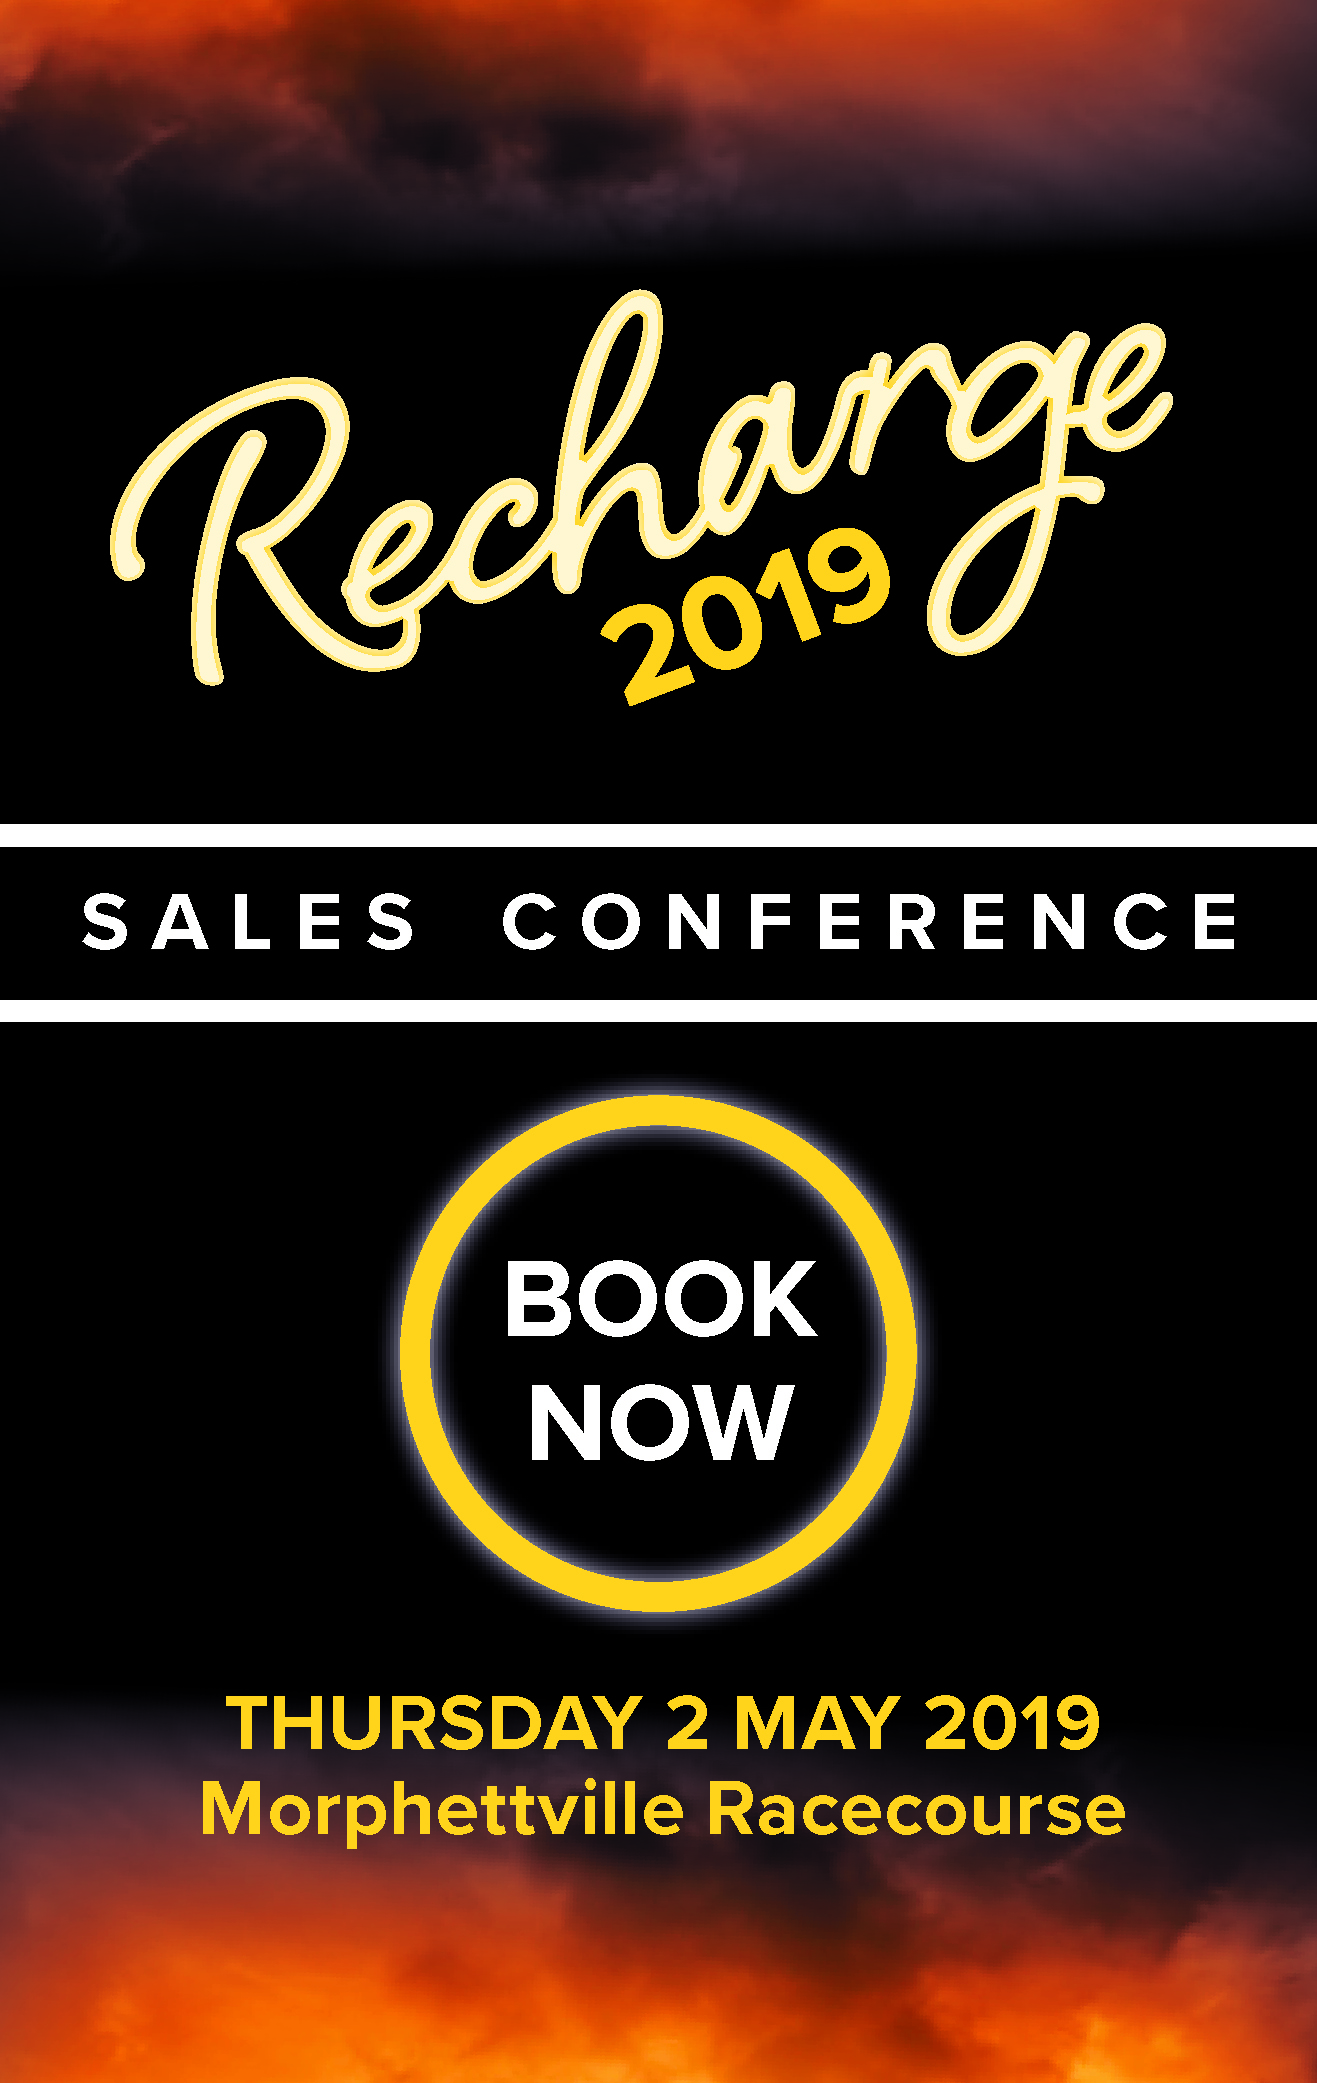 Sales Conference Book Now - Side Banner